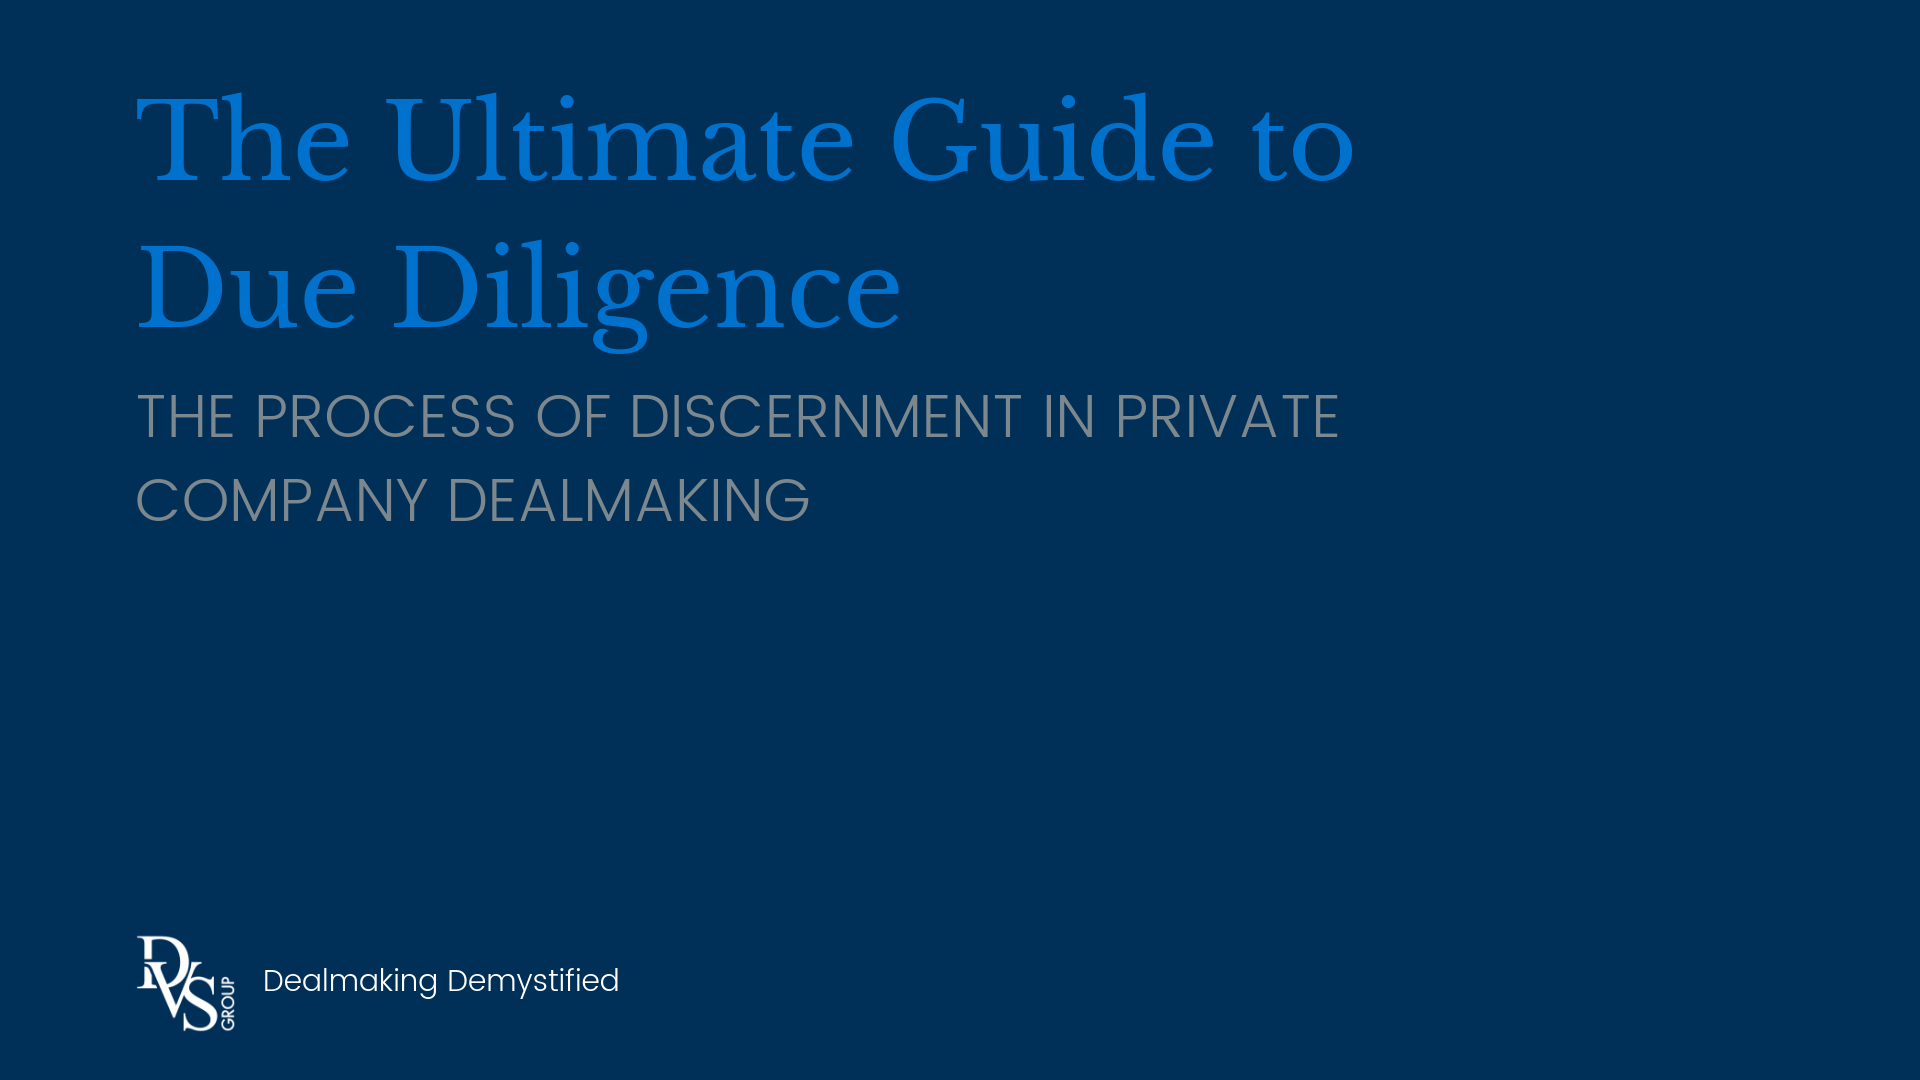 The Ultimate Guide to Due Diligence